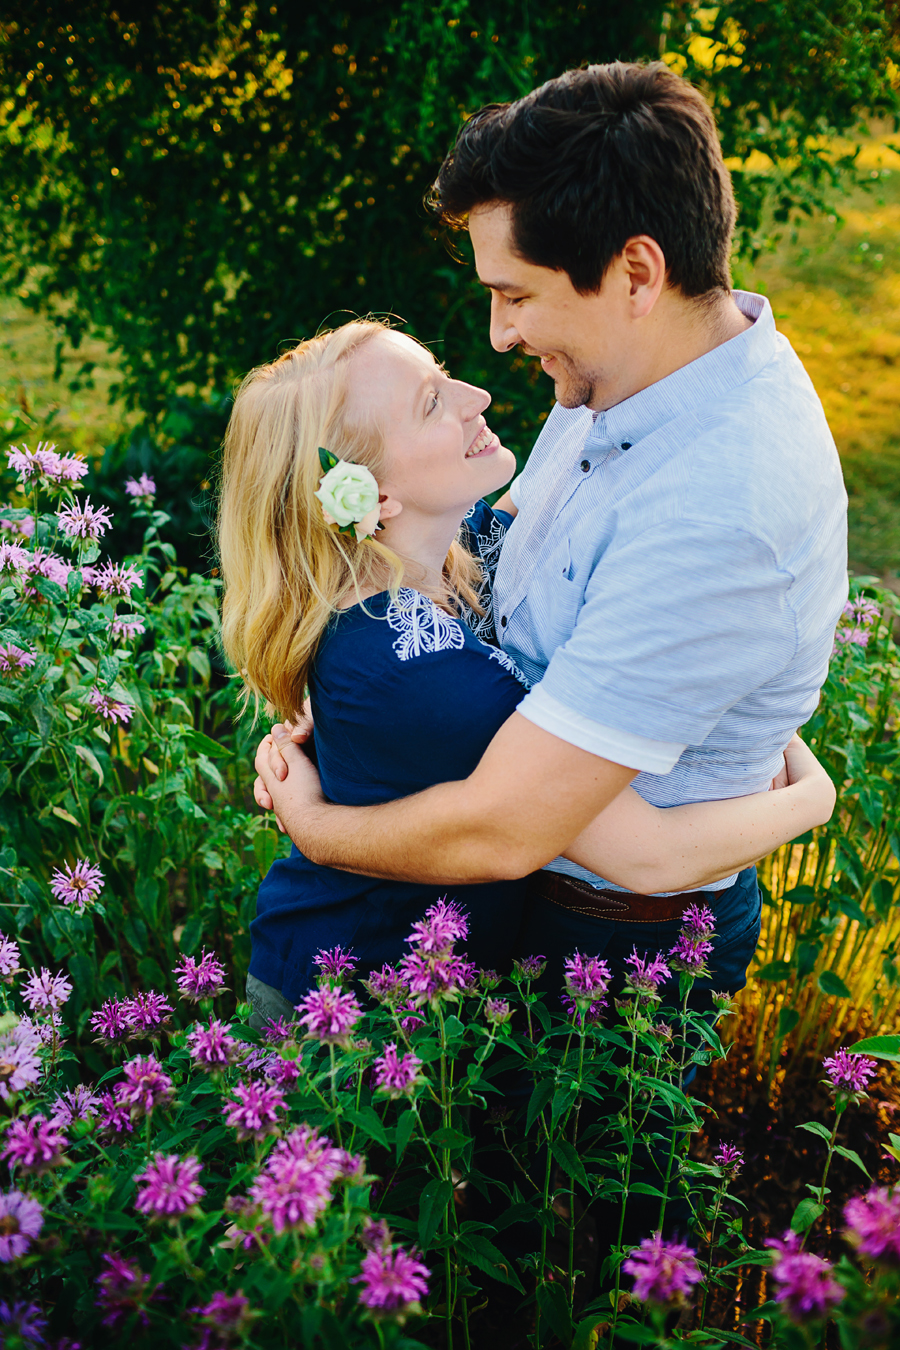 field of flowers engagement photography009.jpg